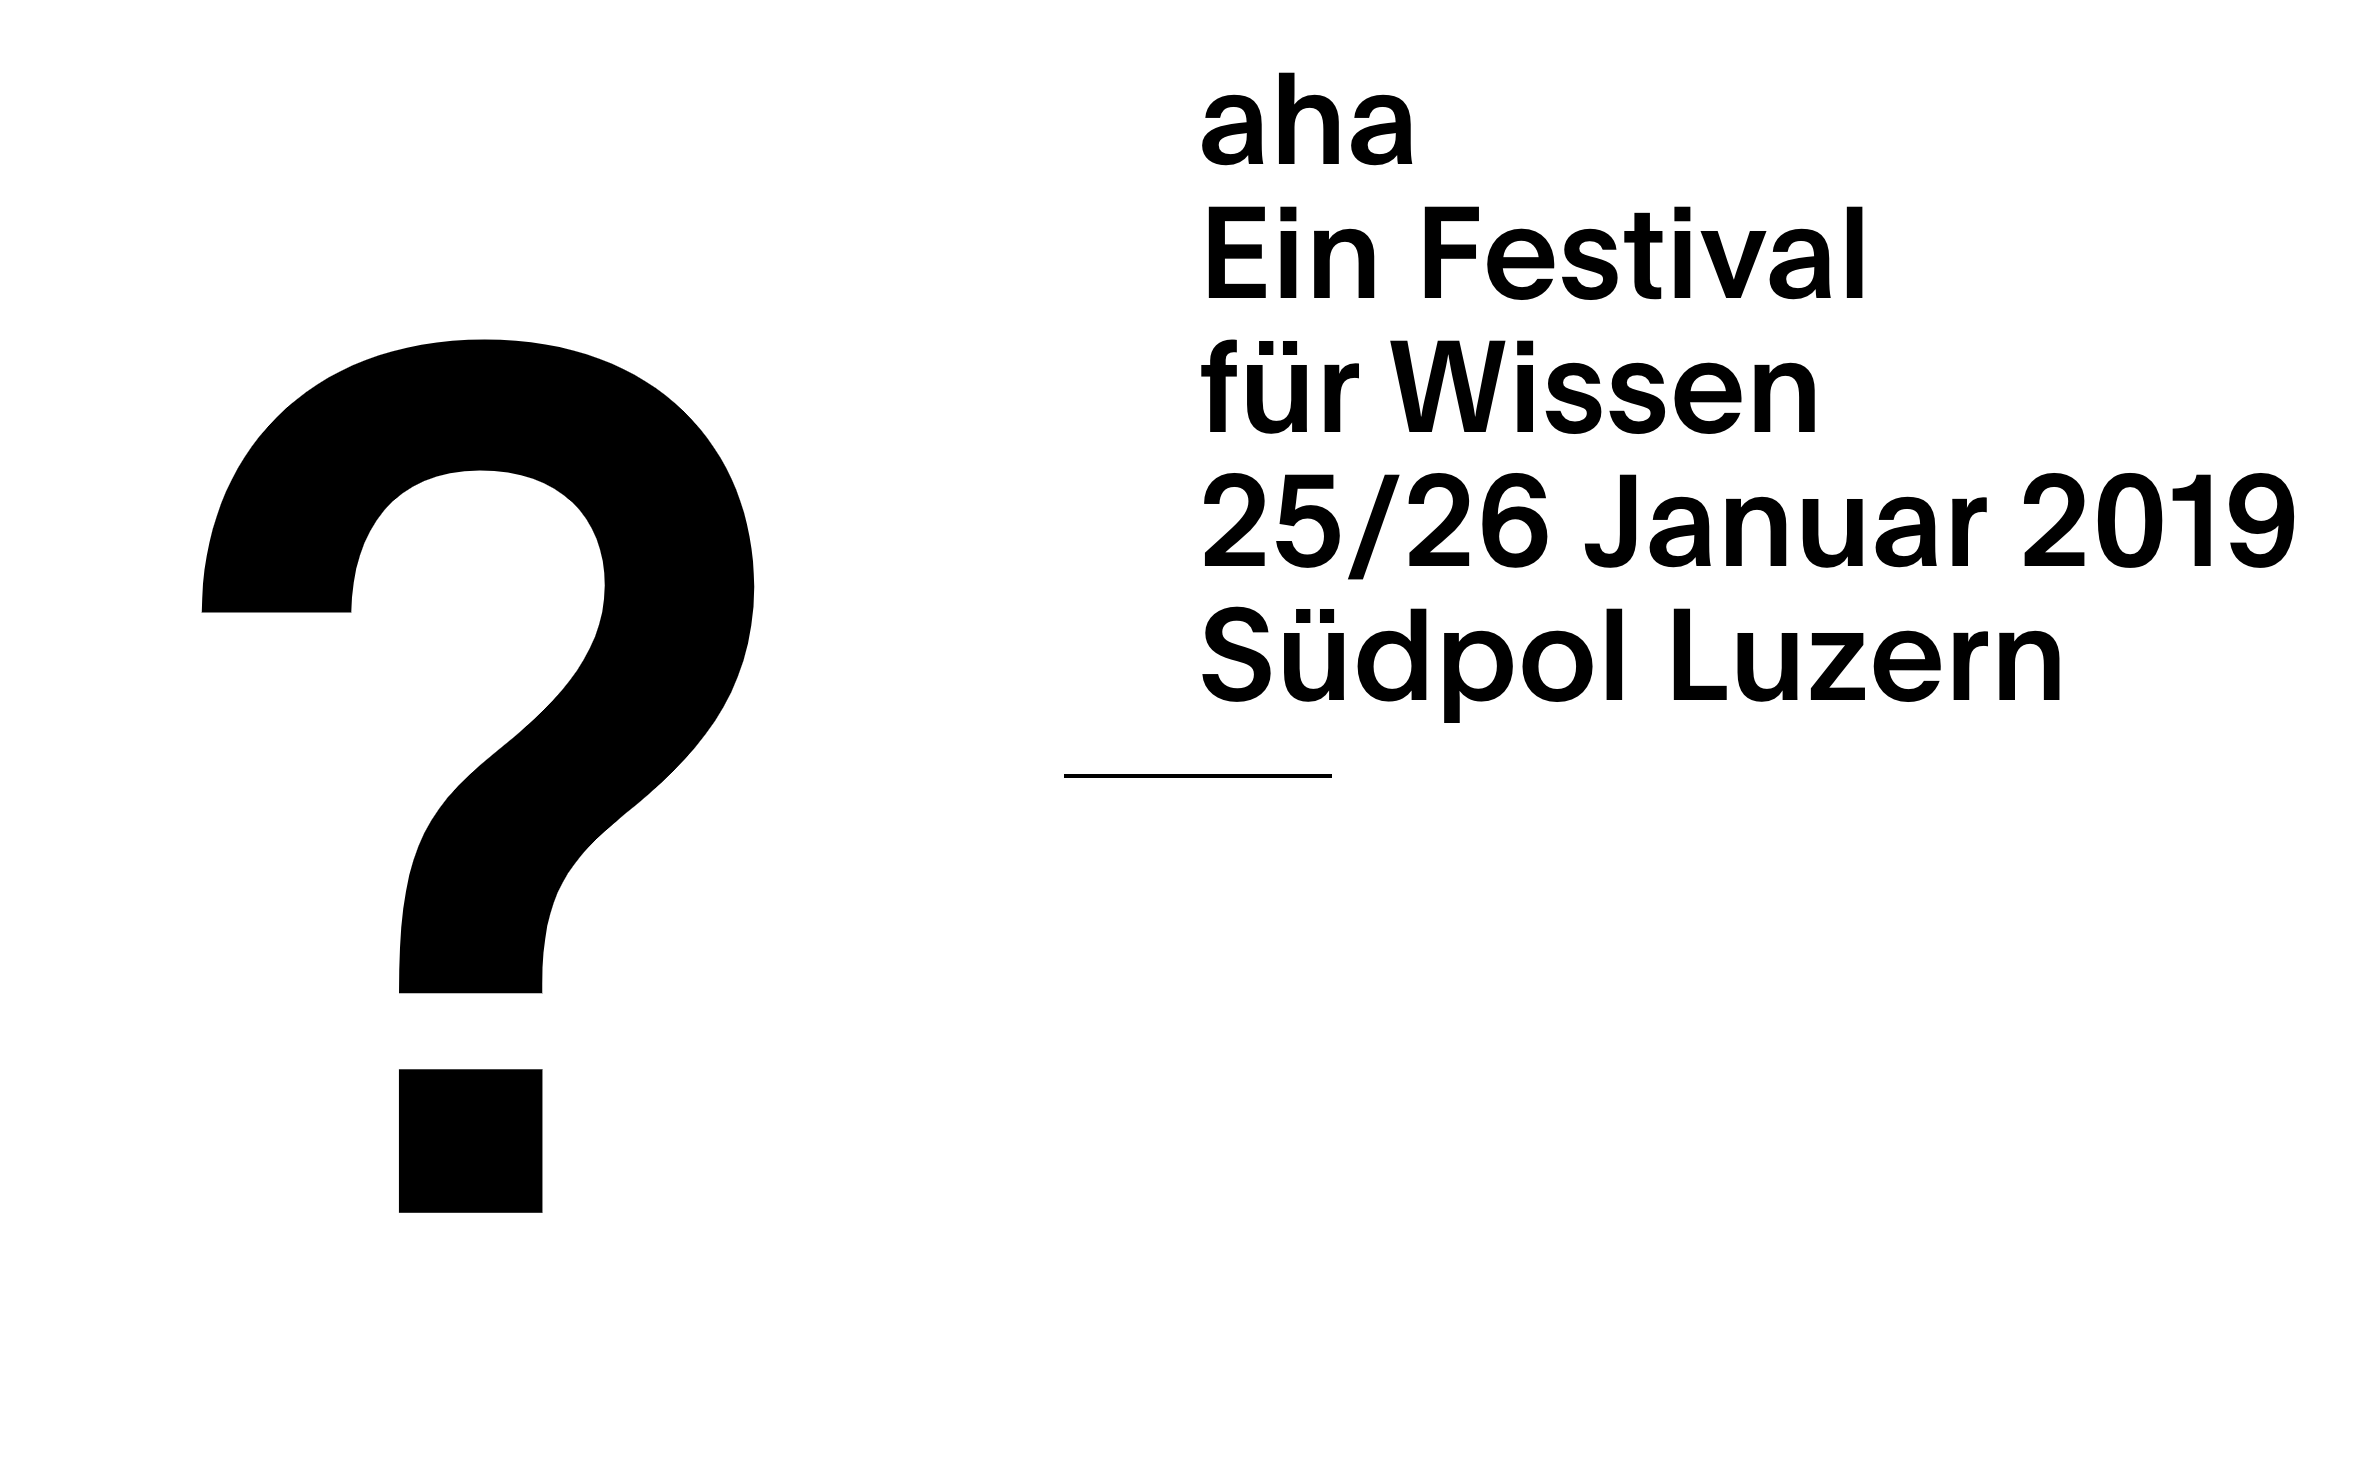 AHA Festival - A festival to convey research and knowledge aimed at curious minds.